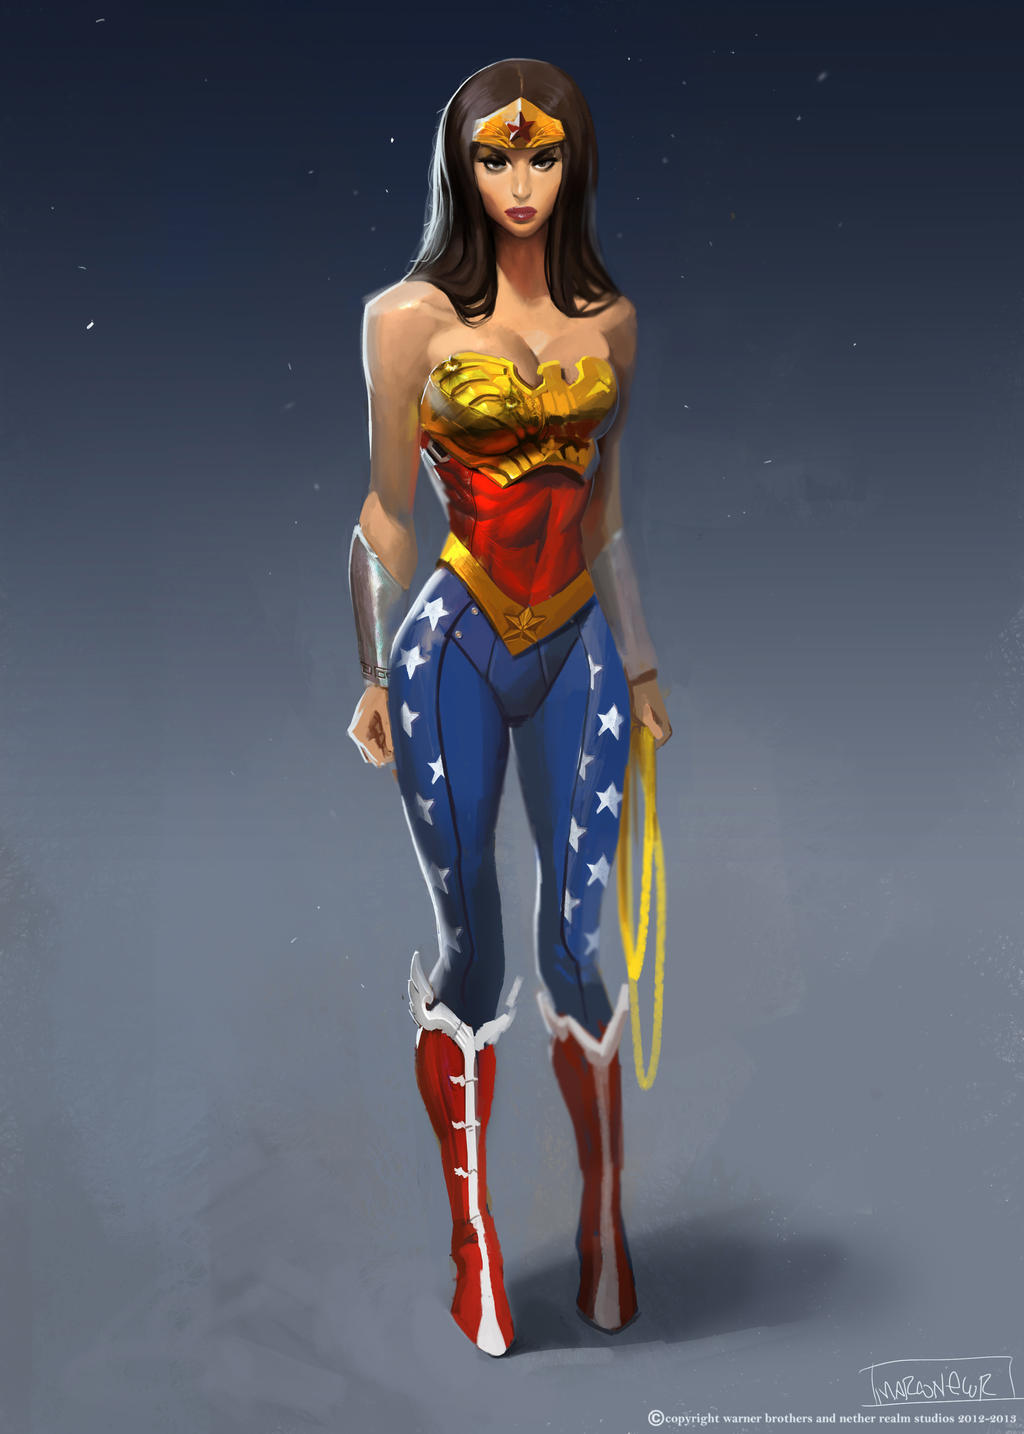 wonder woman character building by marconelor